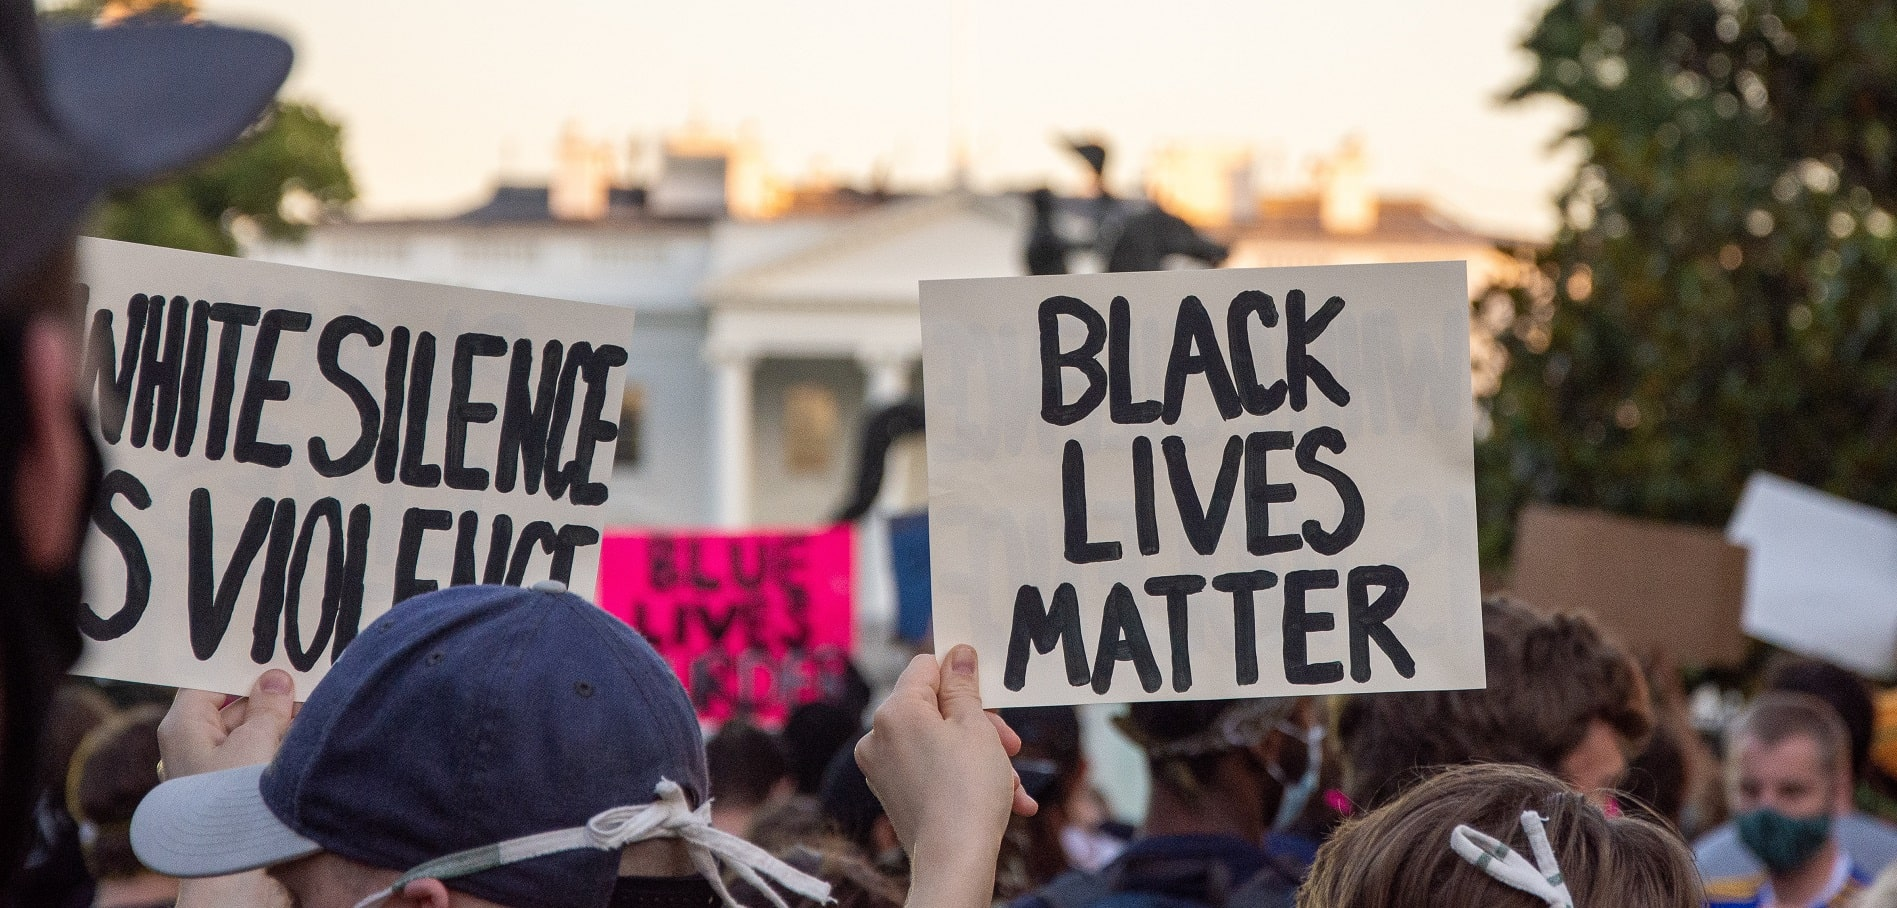 black-lives-matter-protesters-holding-signs